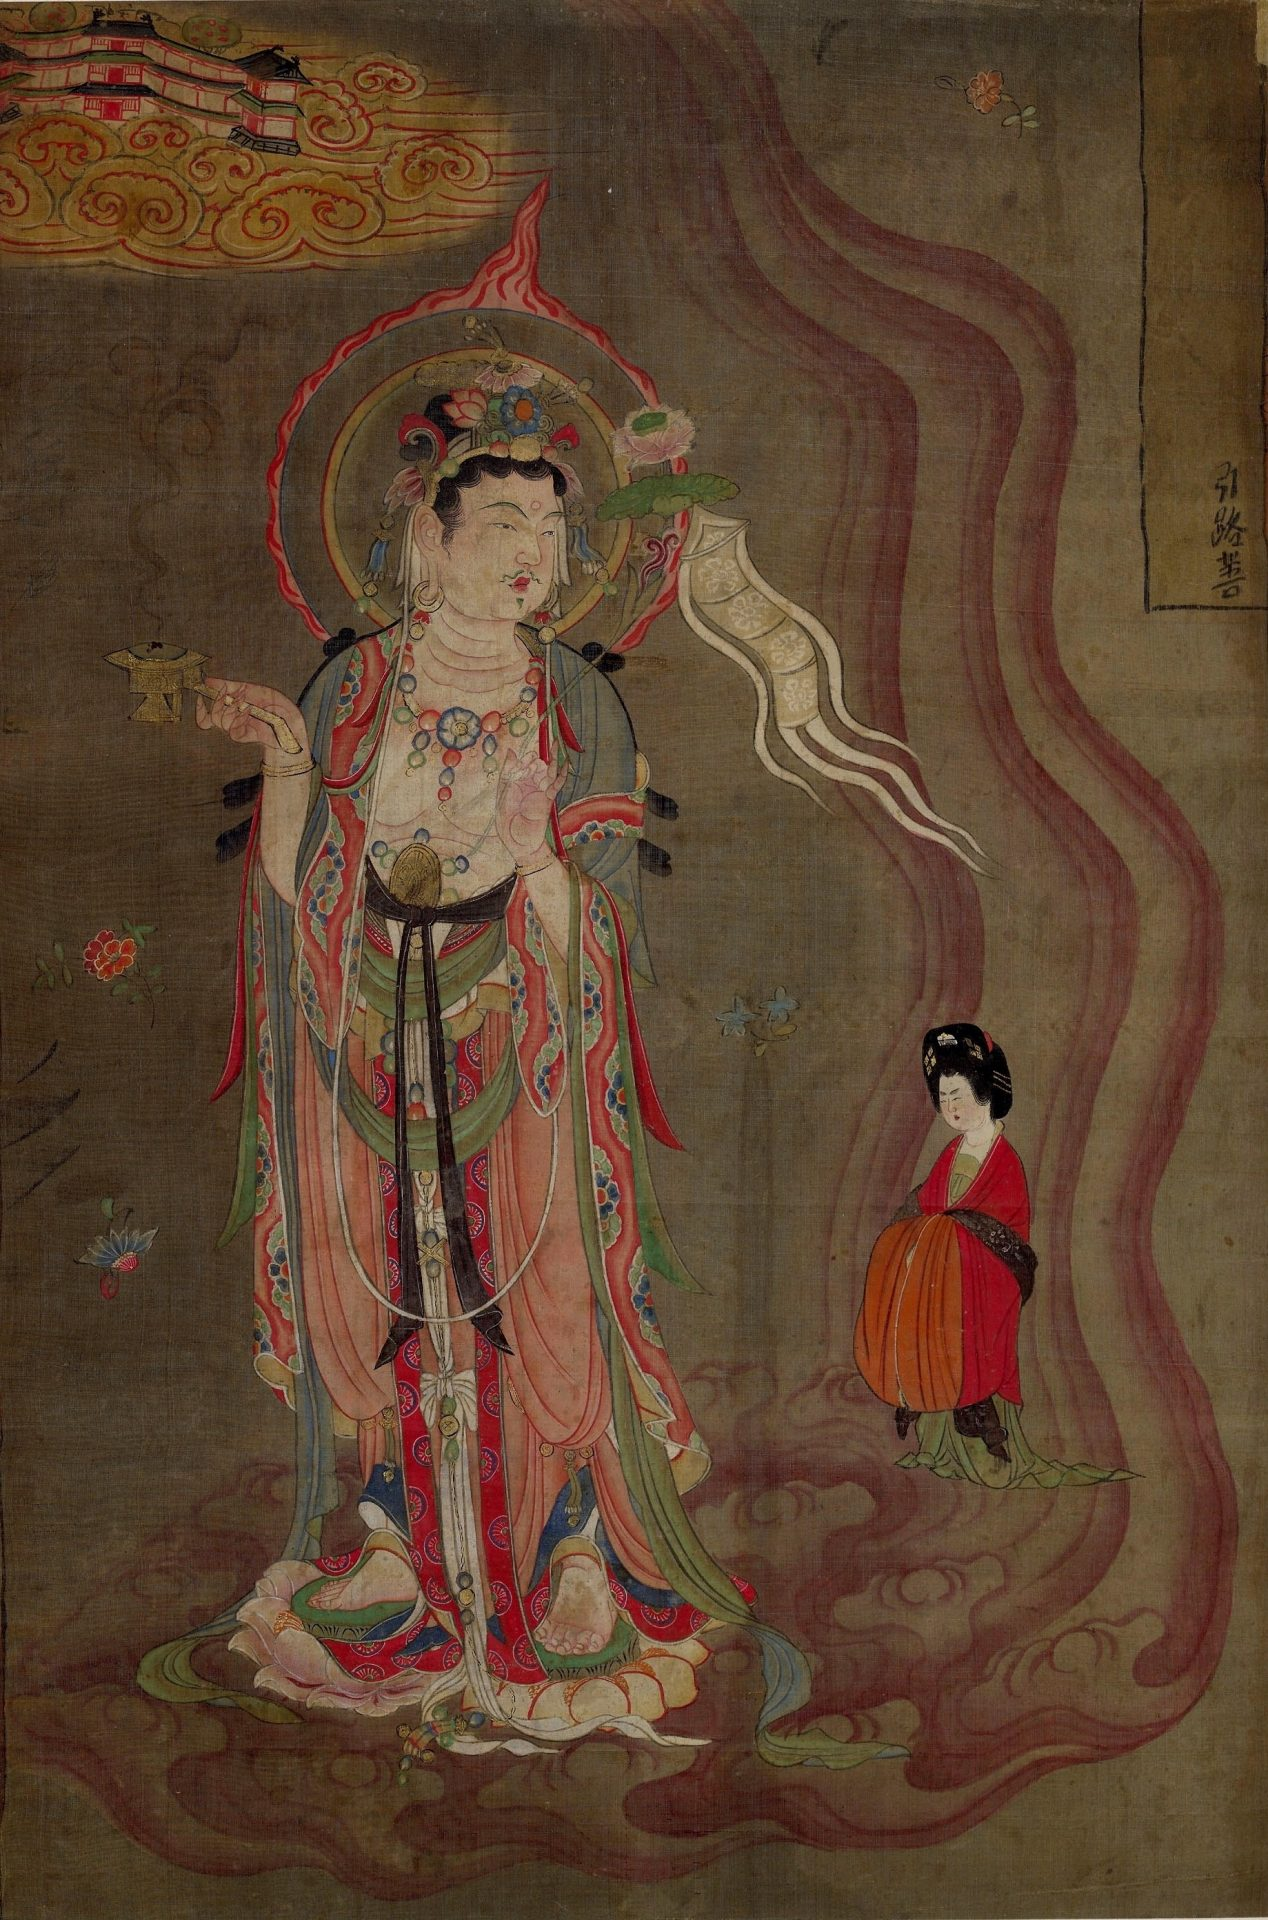 The couple decided to write a prayer, burning it in front of a Bodhisattva statue and praying to the Bodhisattva to give them an answer. (Image: wikimedia / CC0 1.0)